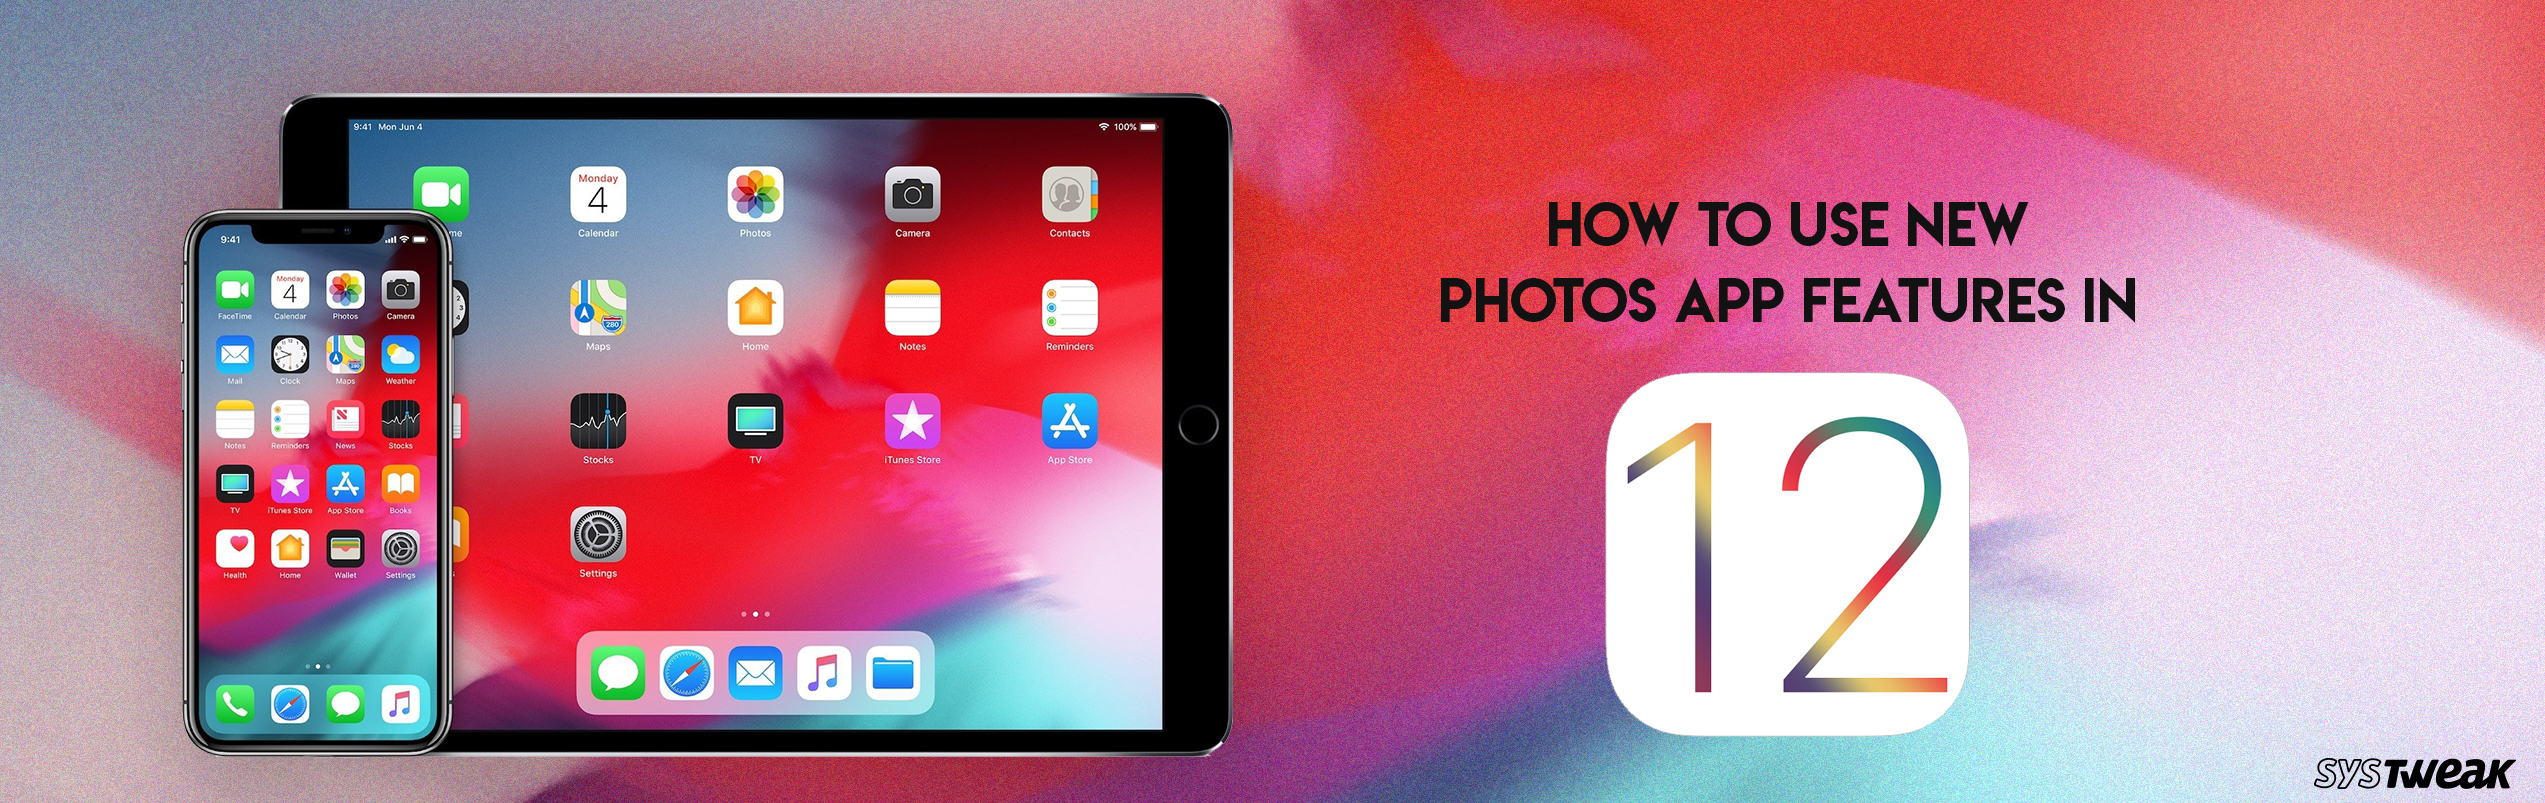 How To Use New Photos App Features In iOS 12?